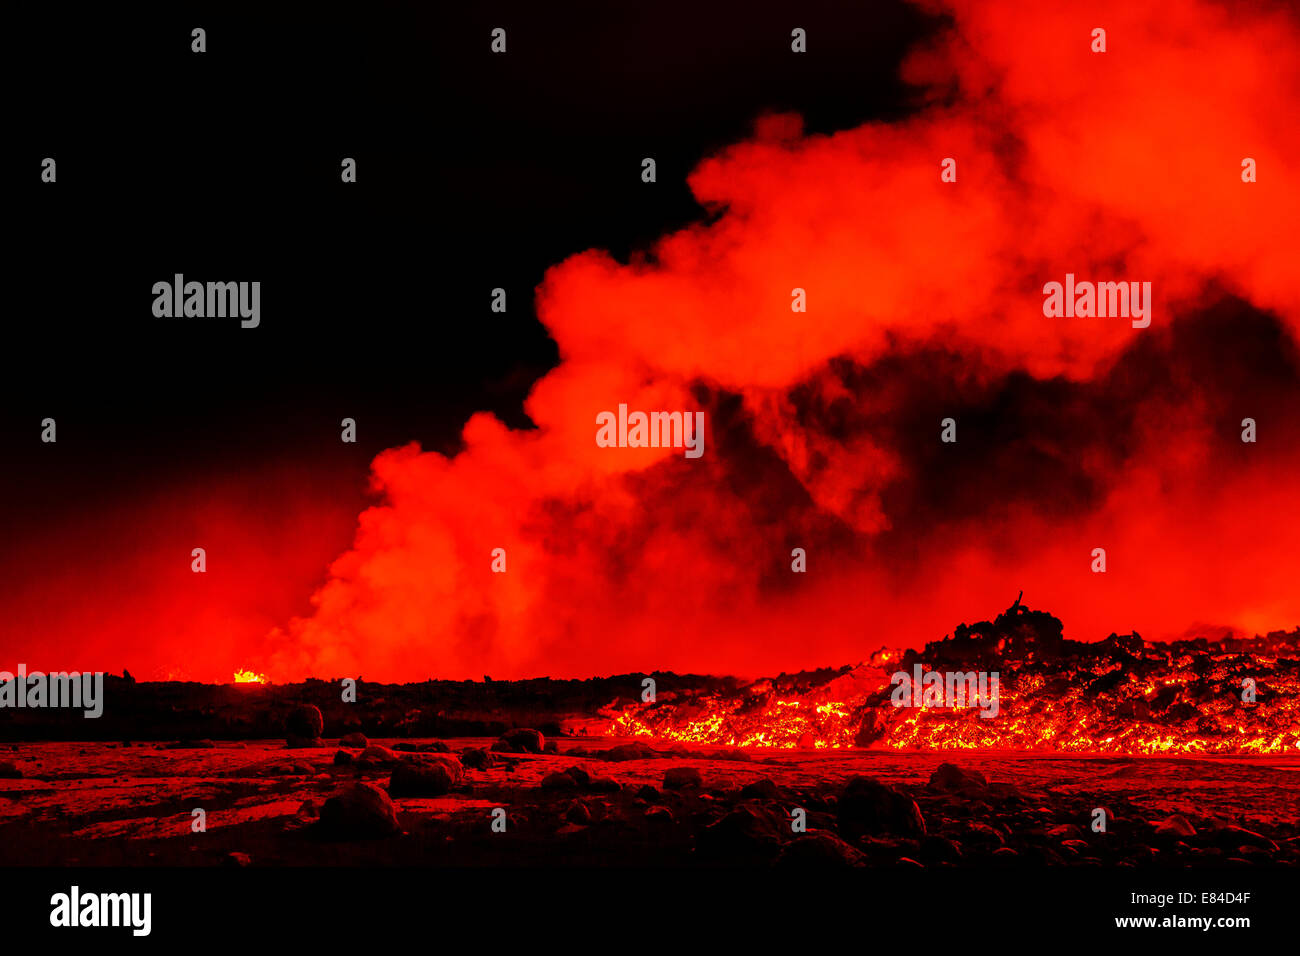 Lava and plumes from the Holuhraun Fissure Eruption, by the Bardarbunga Volcano, Iceland. - Stock Image